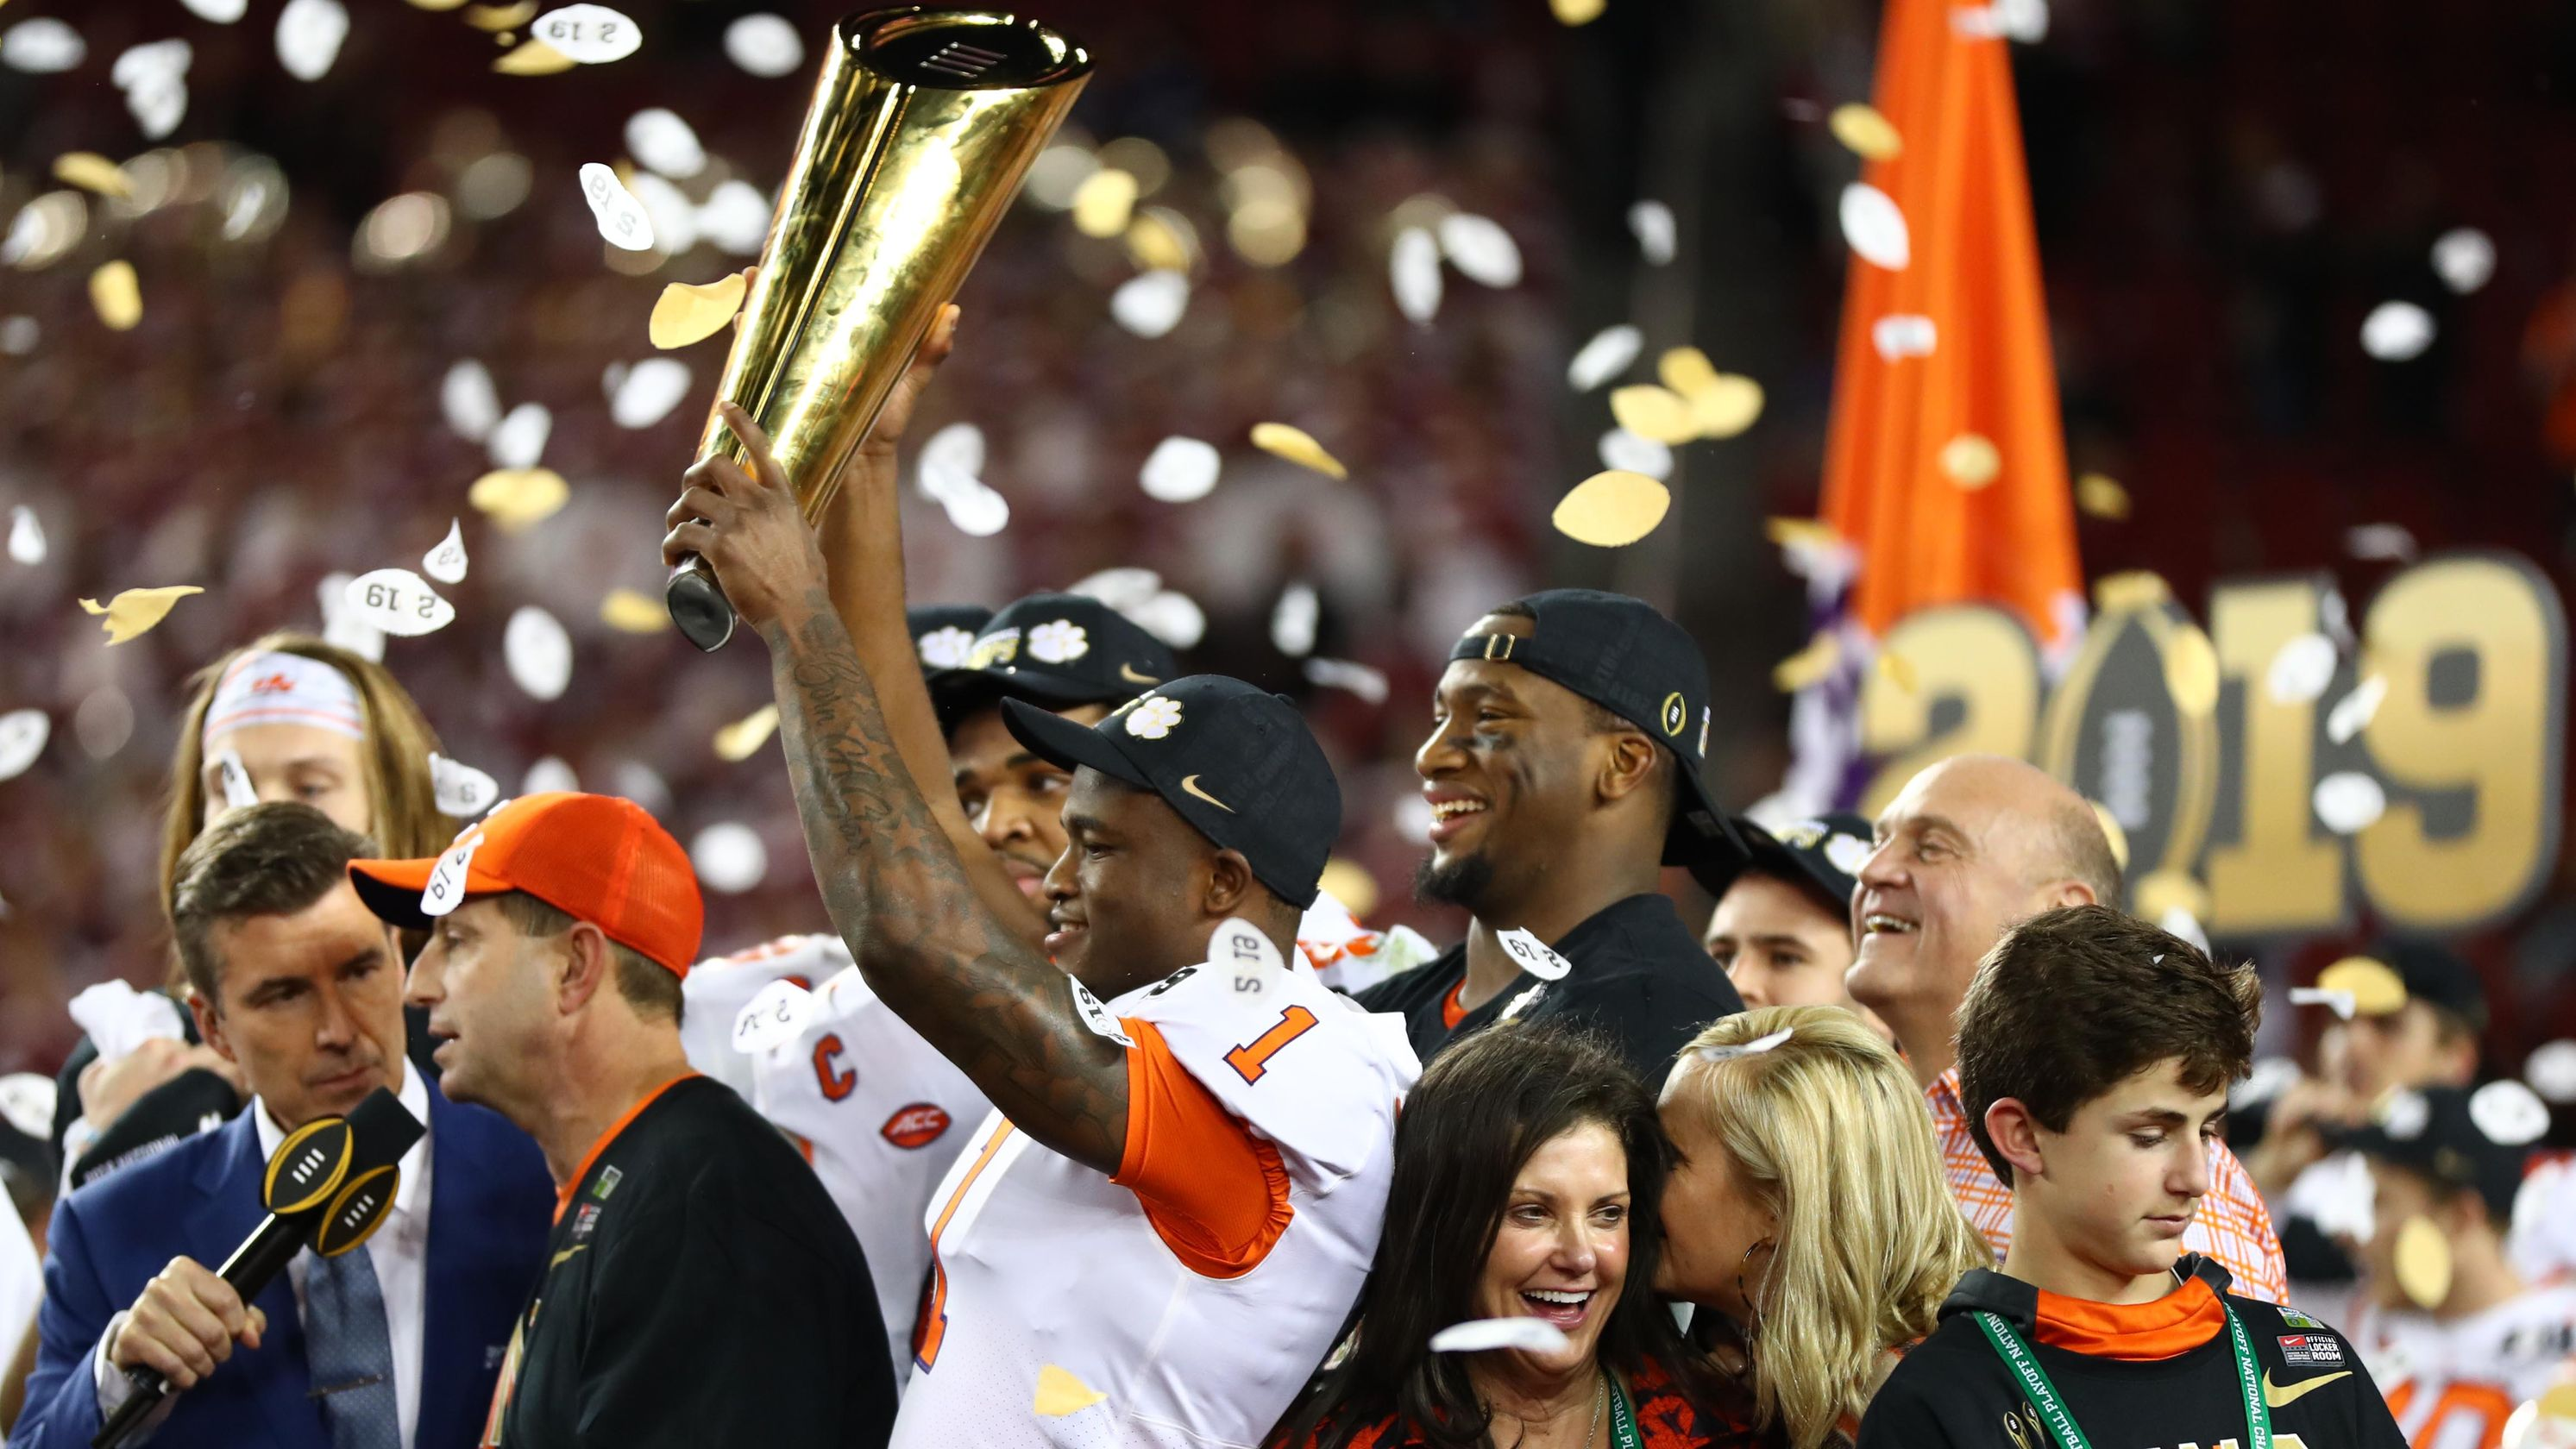 Donald Trump tweets that national champion Clemson football team will visit White House